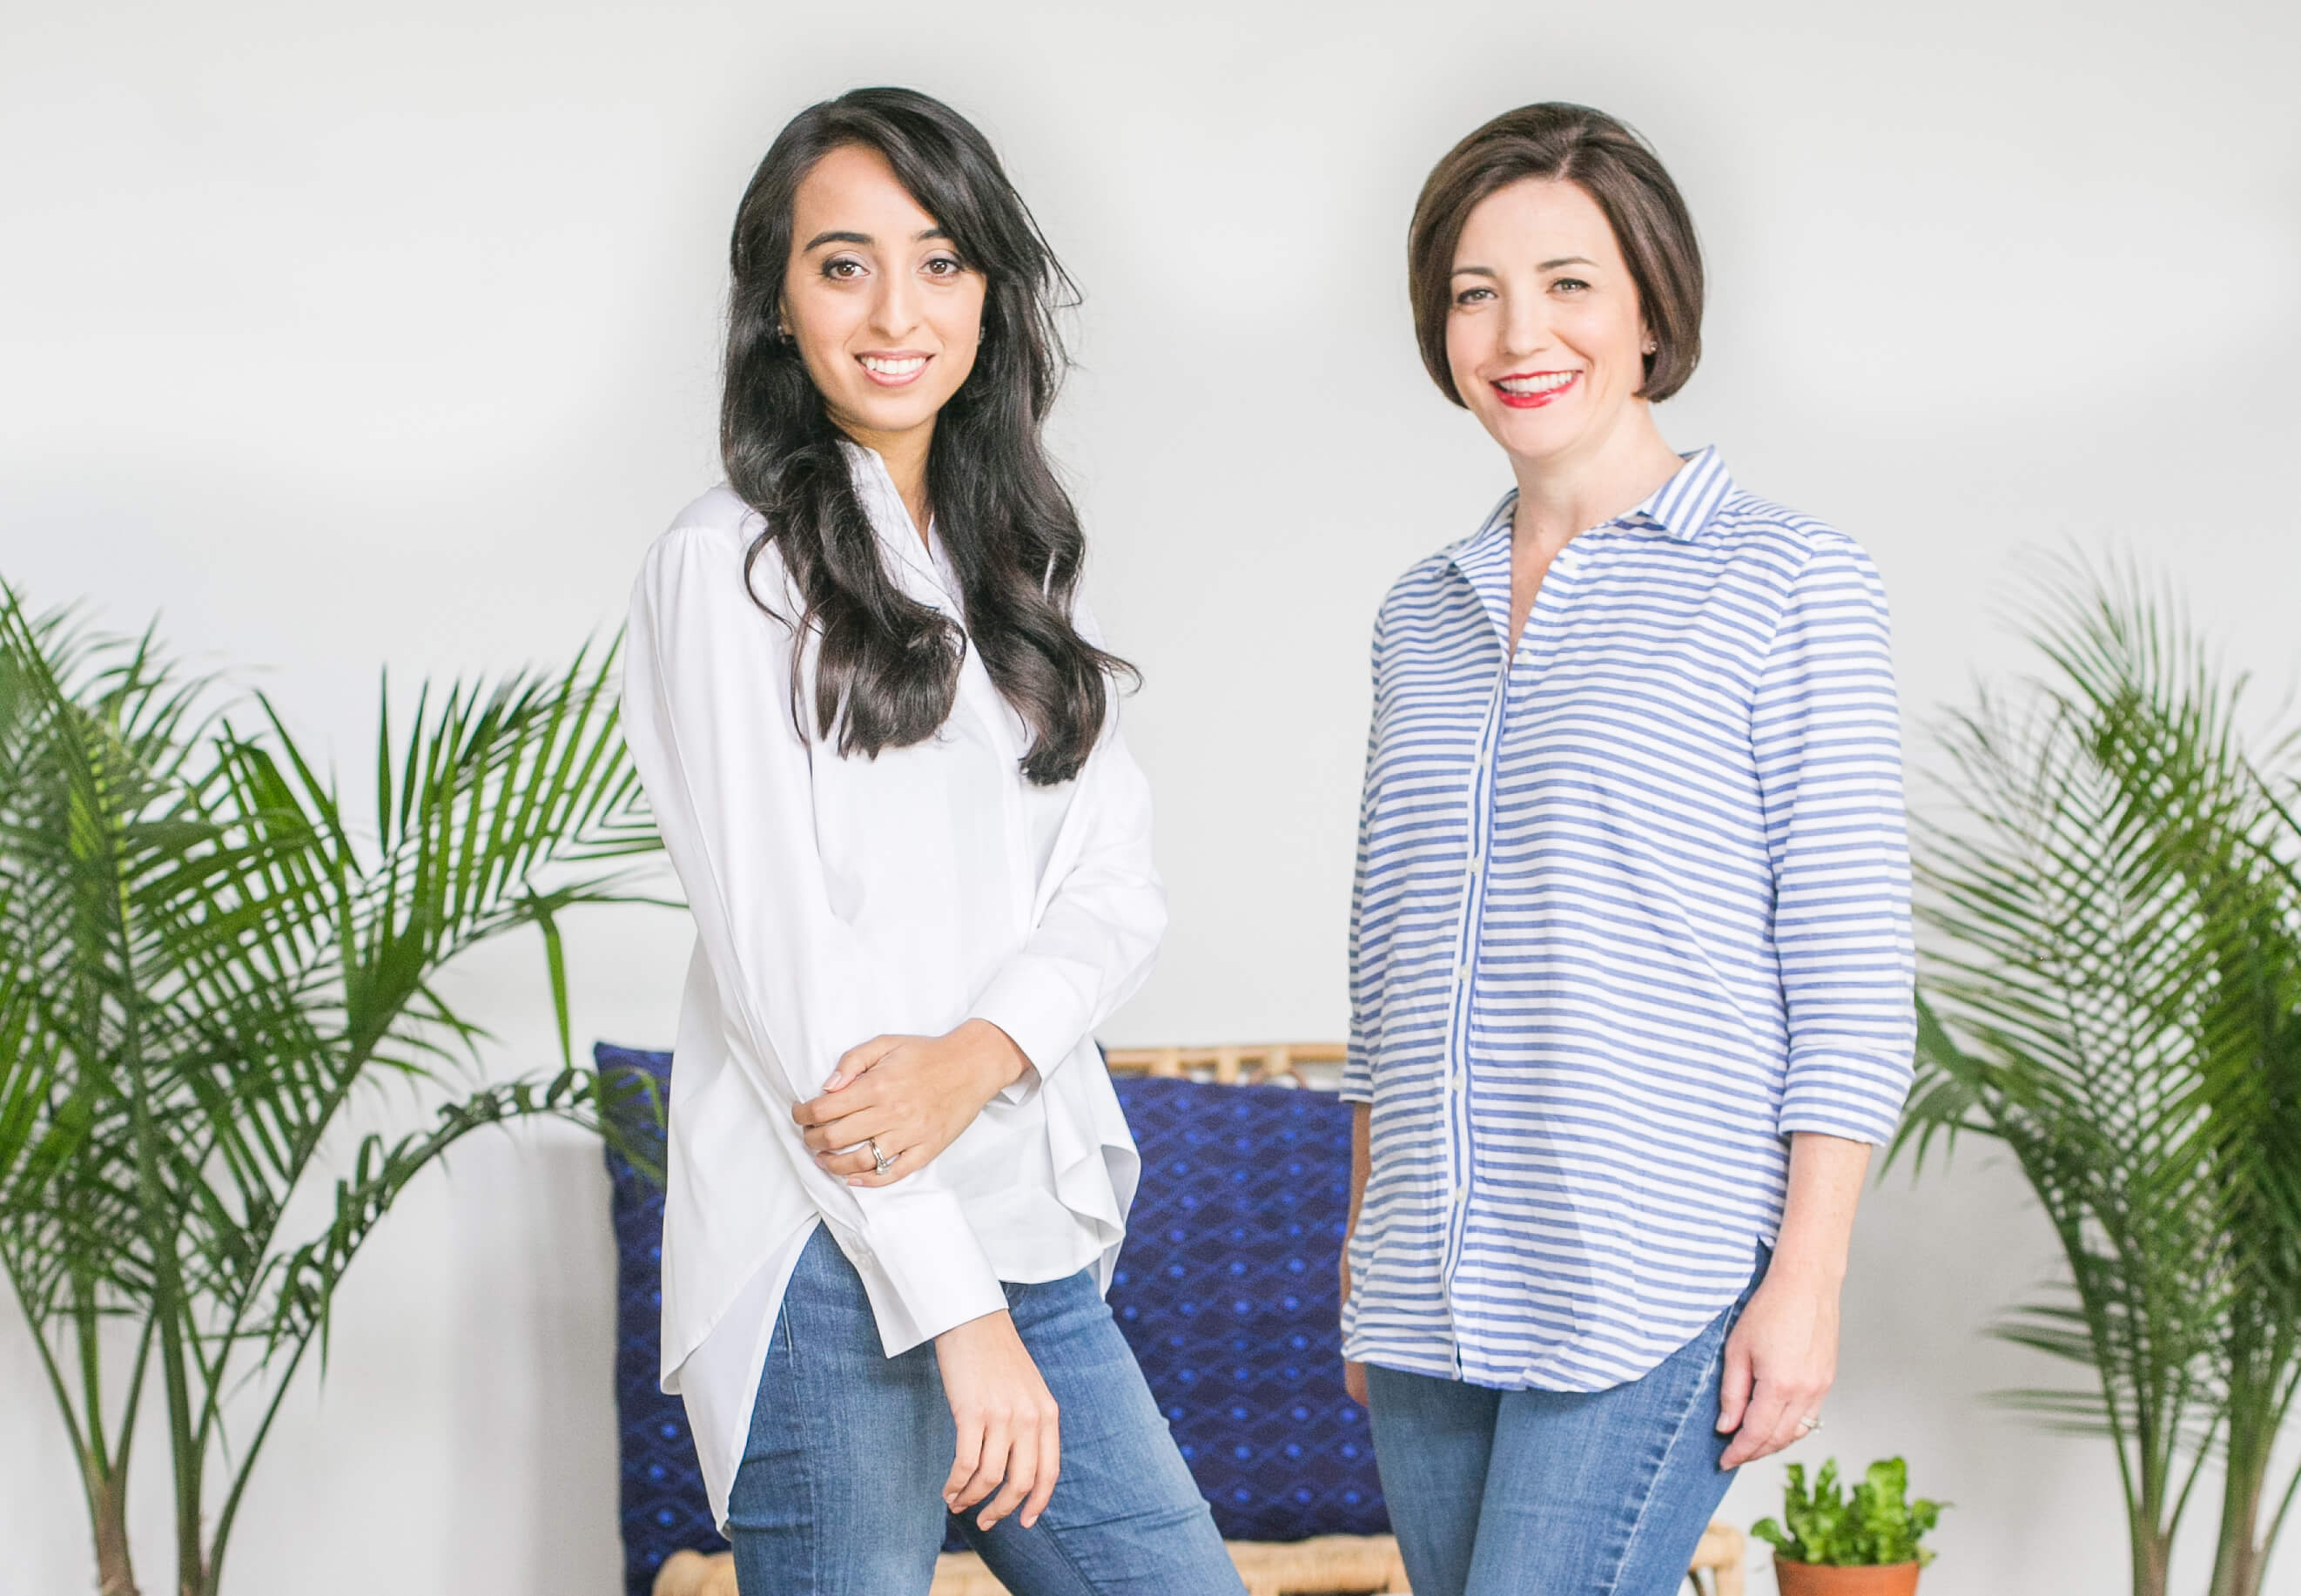 Founders Lori and Reshma of St. Louis, Missouri startup Summersalt